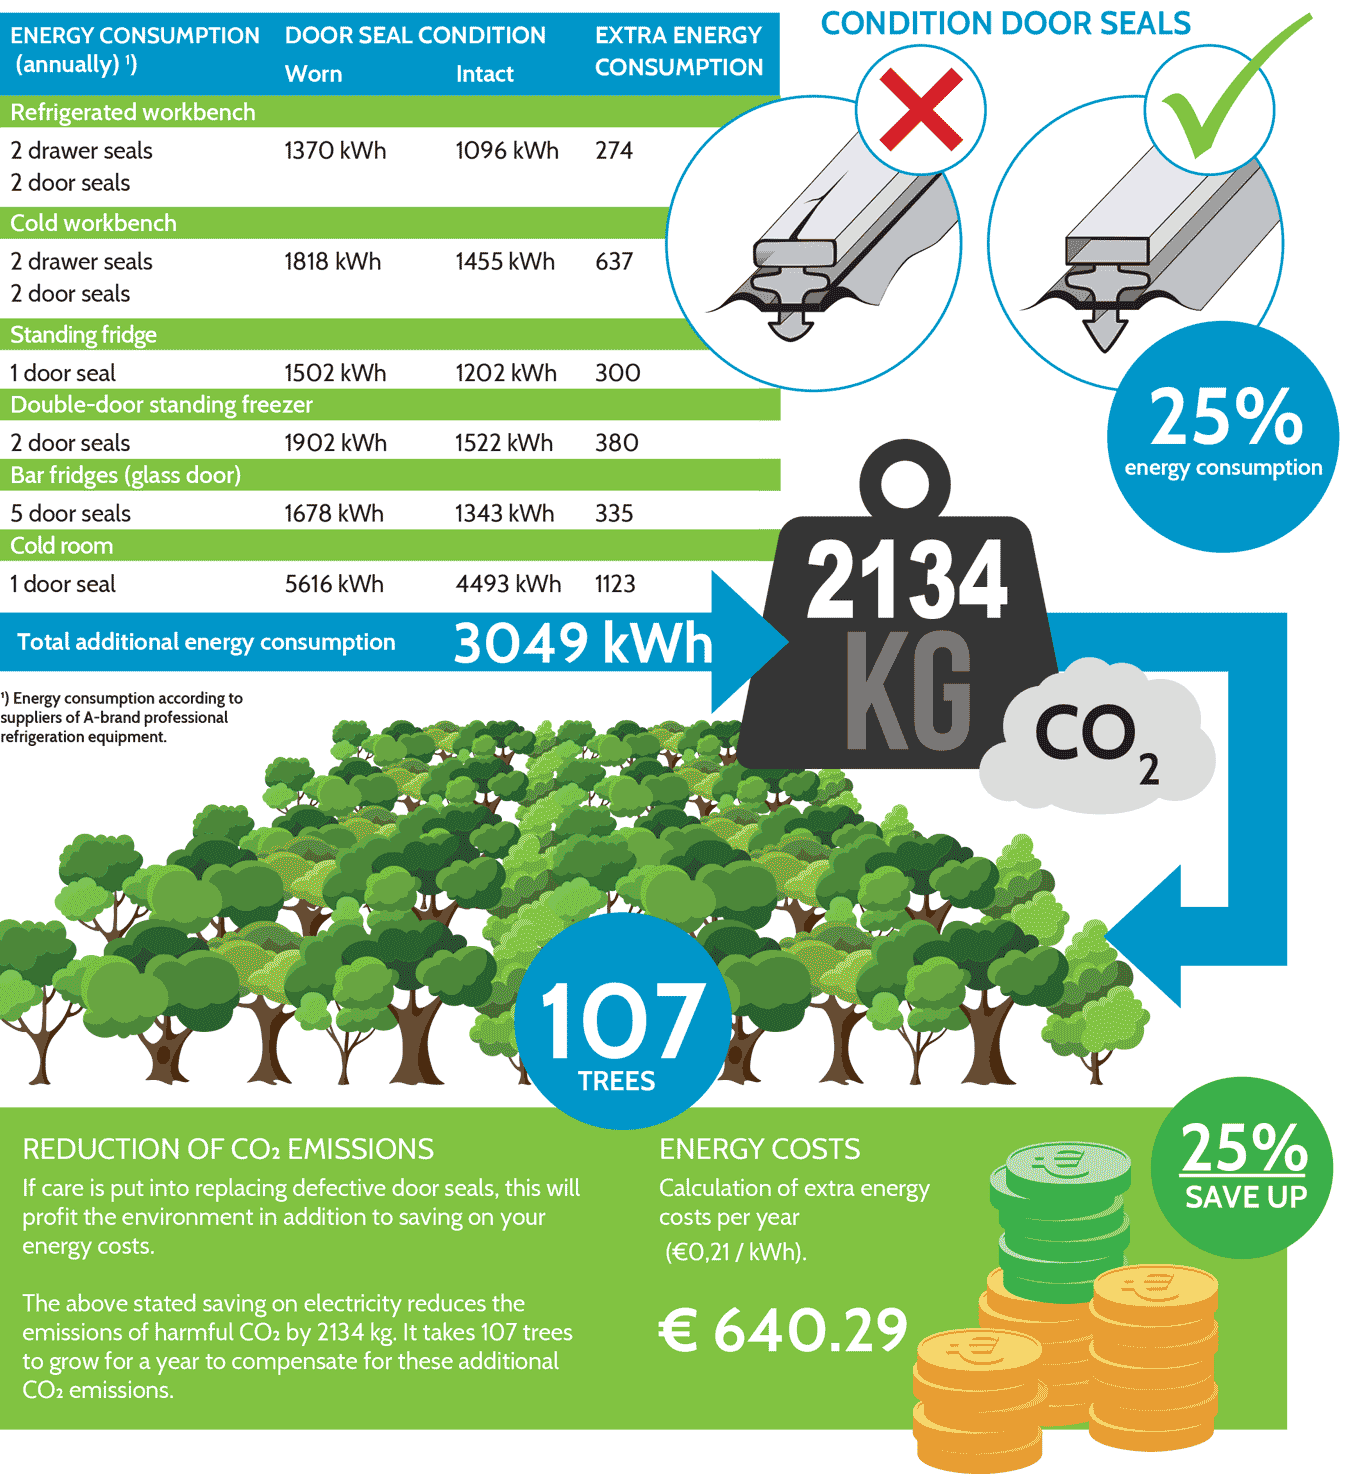 Environmental protection and energy savings